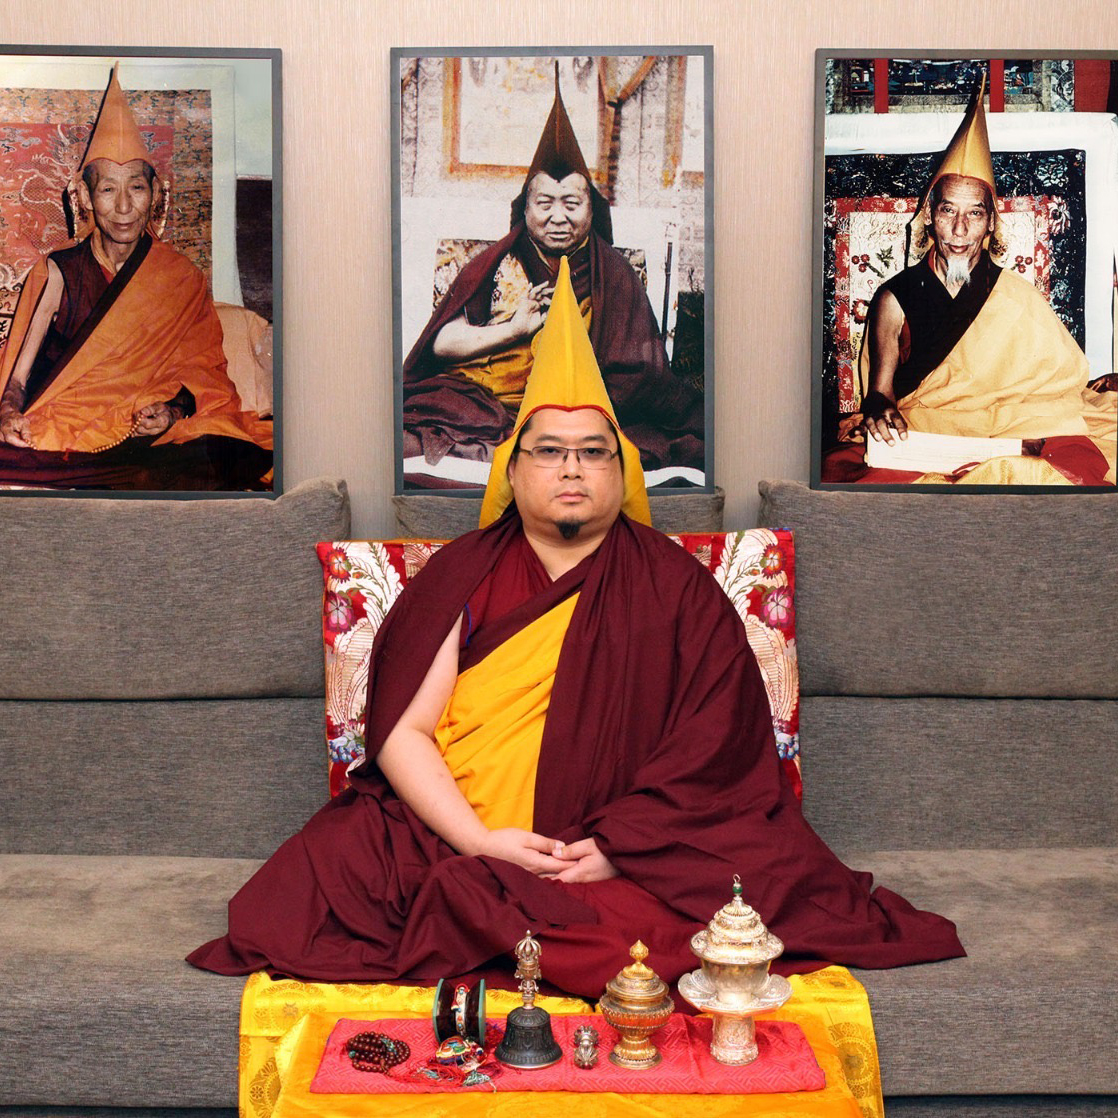 Tsem Rinpoche with portraits of His Holiness Kyabje Pabongka Rinpoche, His Holiness Kyabje Trijang Rinpoche and His Holiness Kyabje Zong Rinpoche.